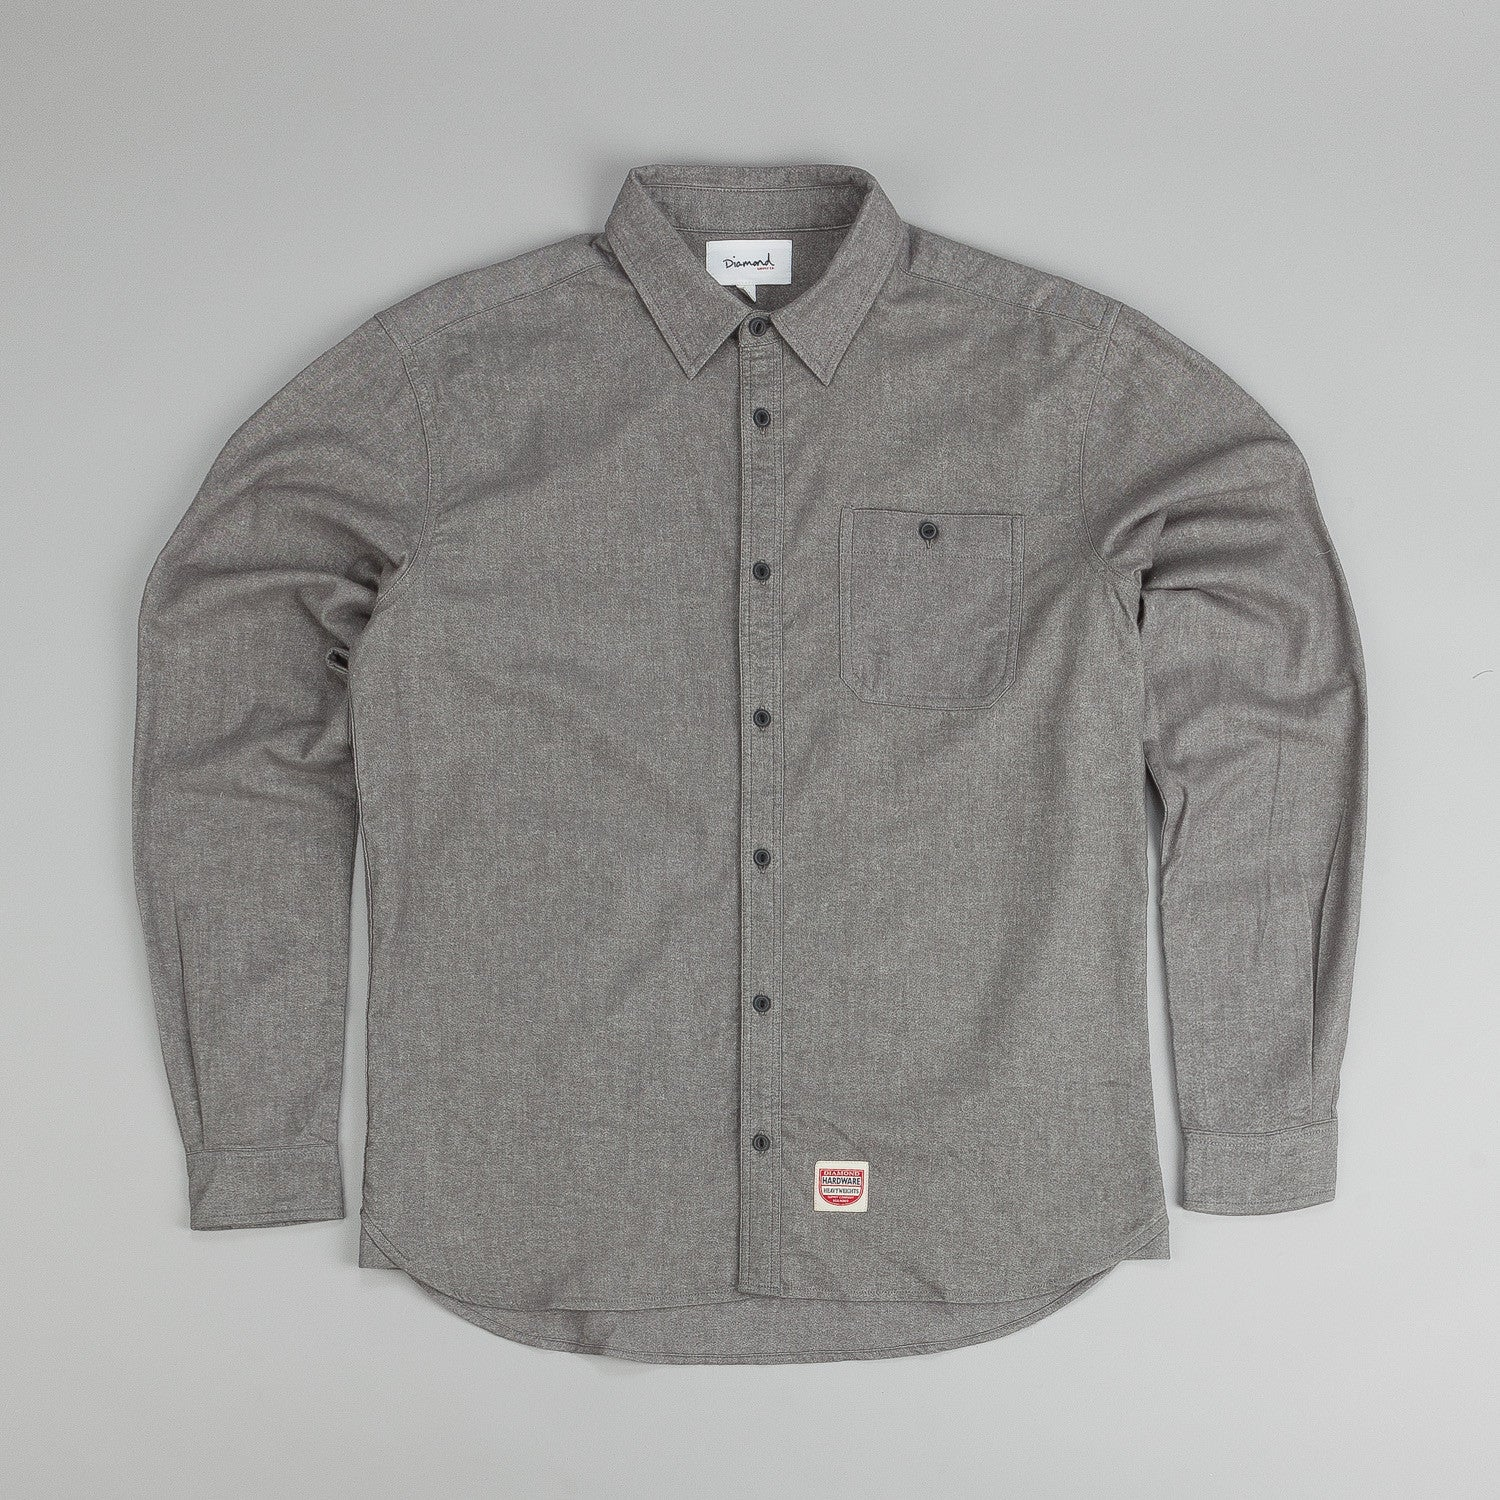 Diamond Union Woven L/S Shirt Heather Grey